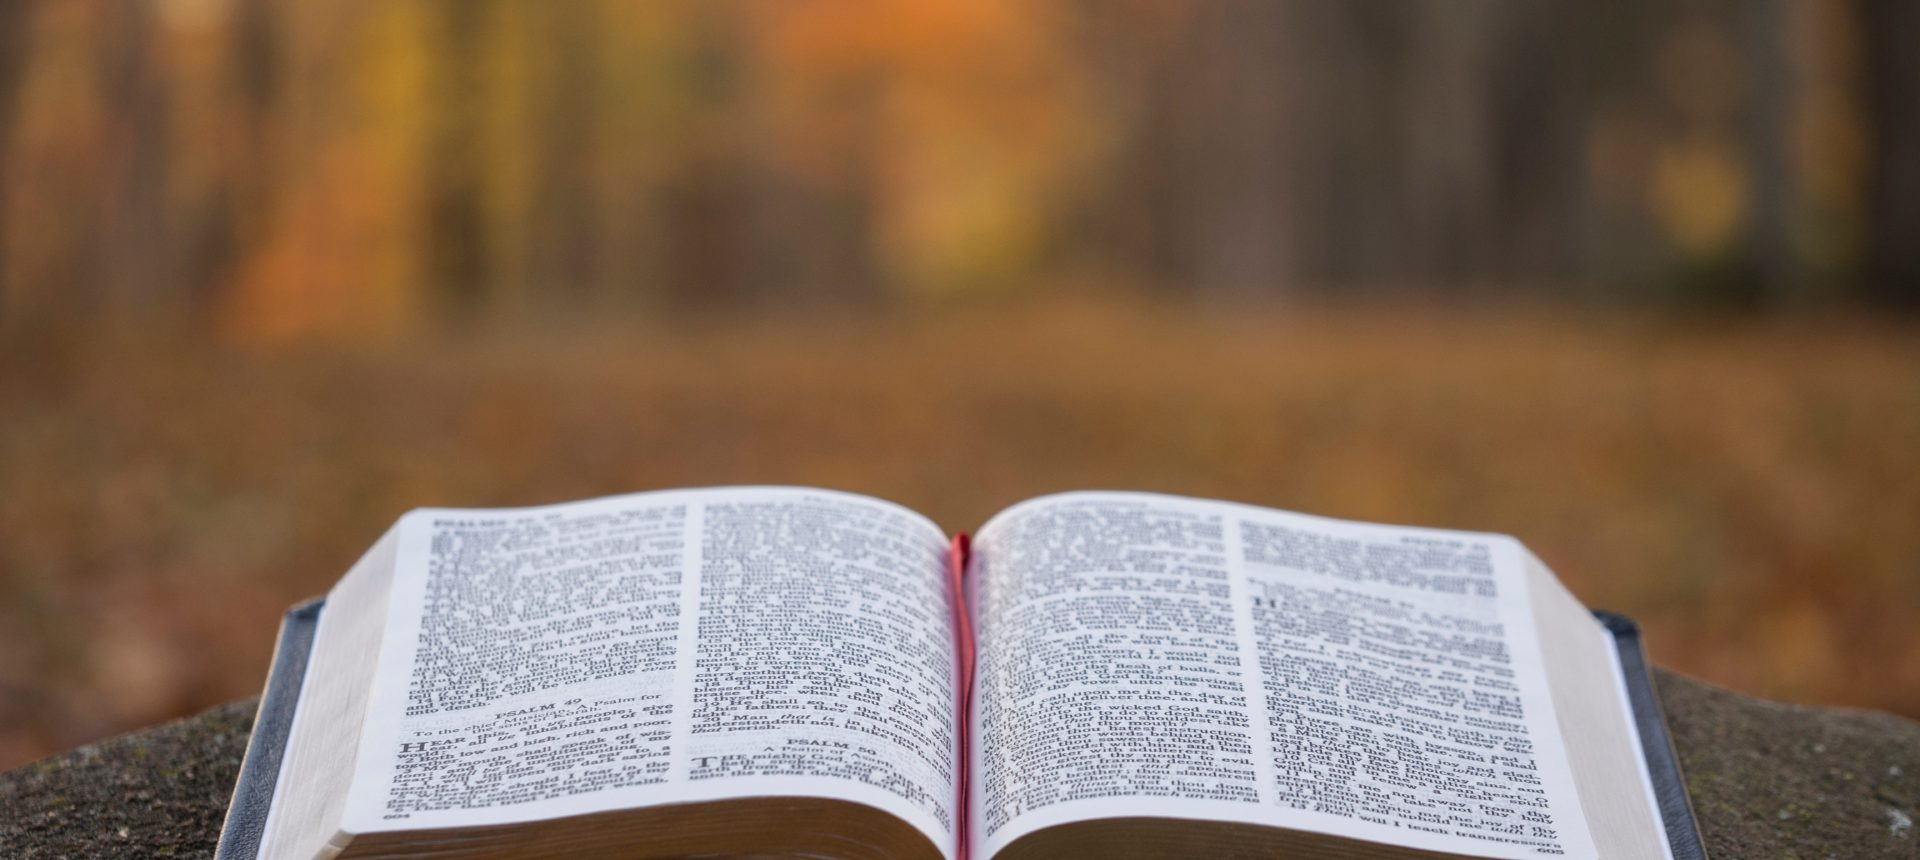 bible page on gray concrete surface